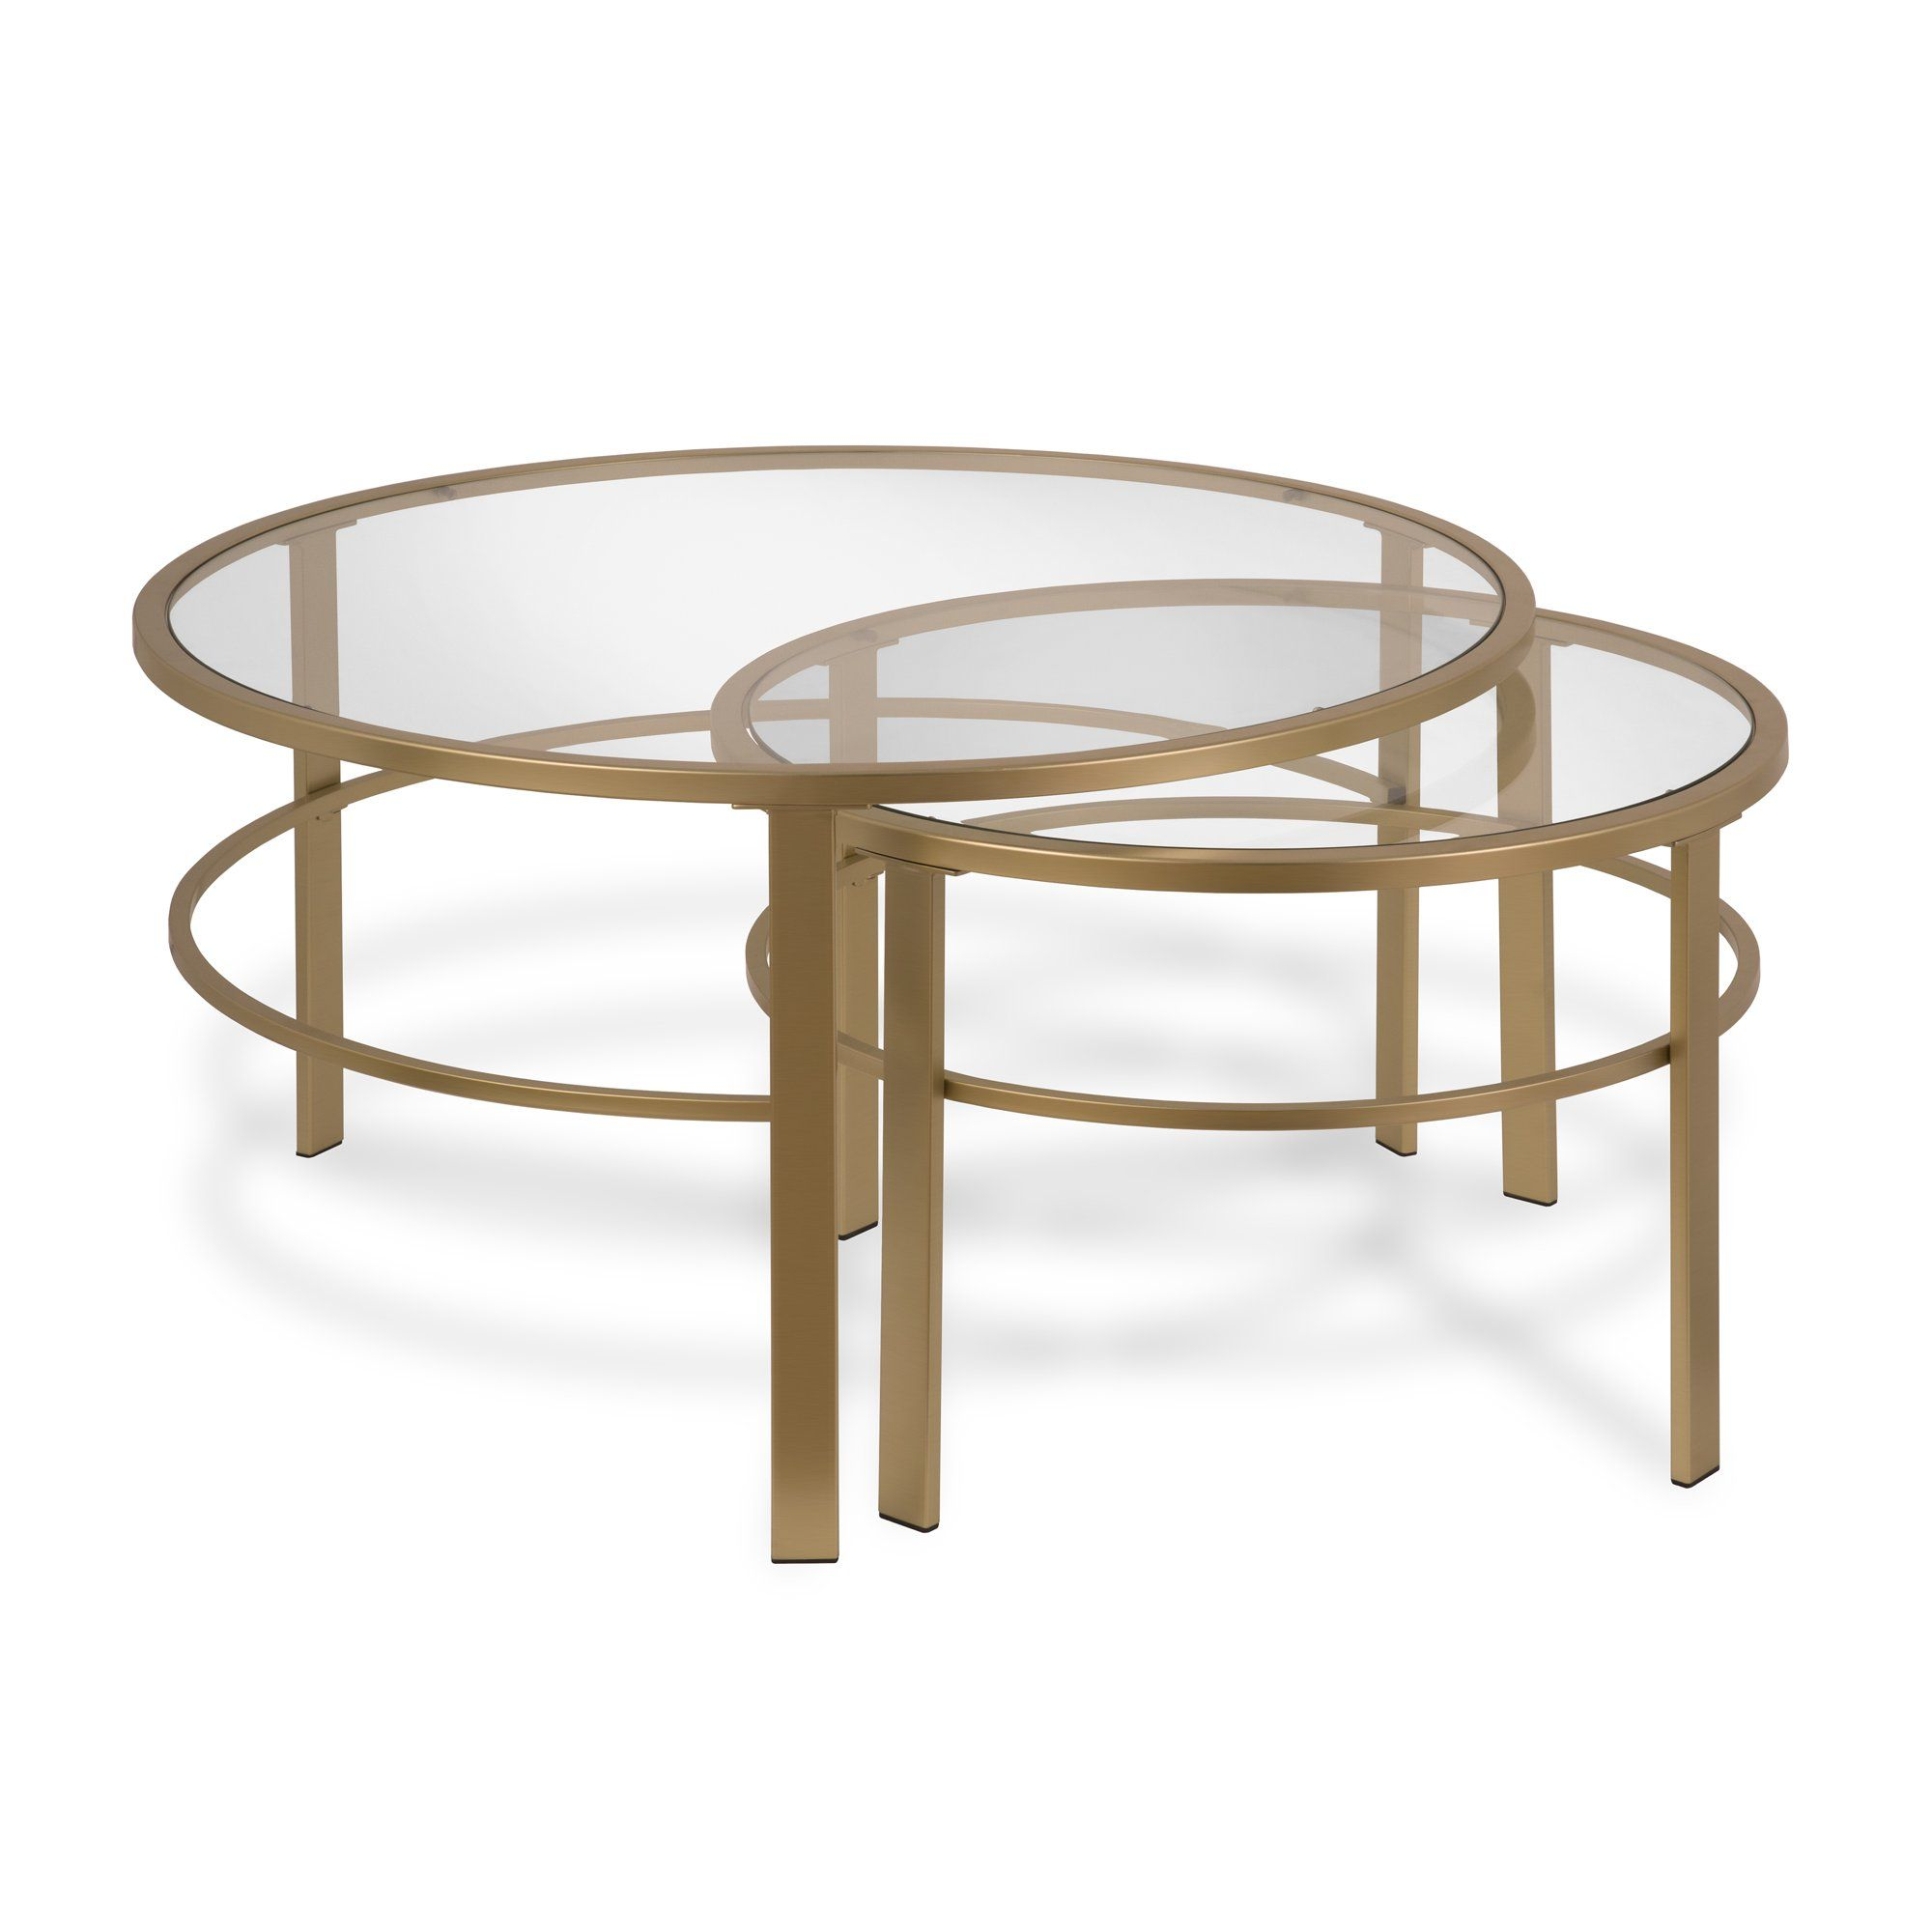 Evelyn Zoe Contemporary Nesting Coffee Table Set With Glass Top Walmart Com In 2021 Nesting Coffee Tables Round Nesting Coffee Tables Coffee Table [ 2000 x 2000 Pixel ]